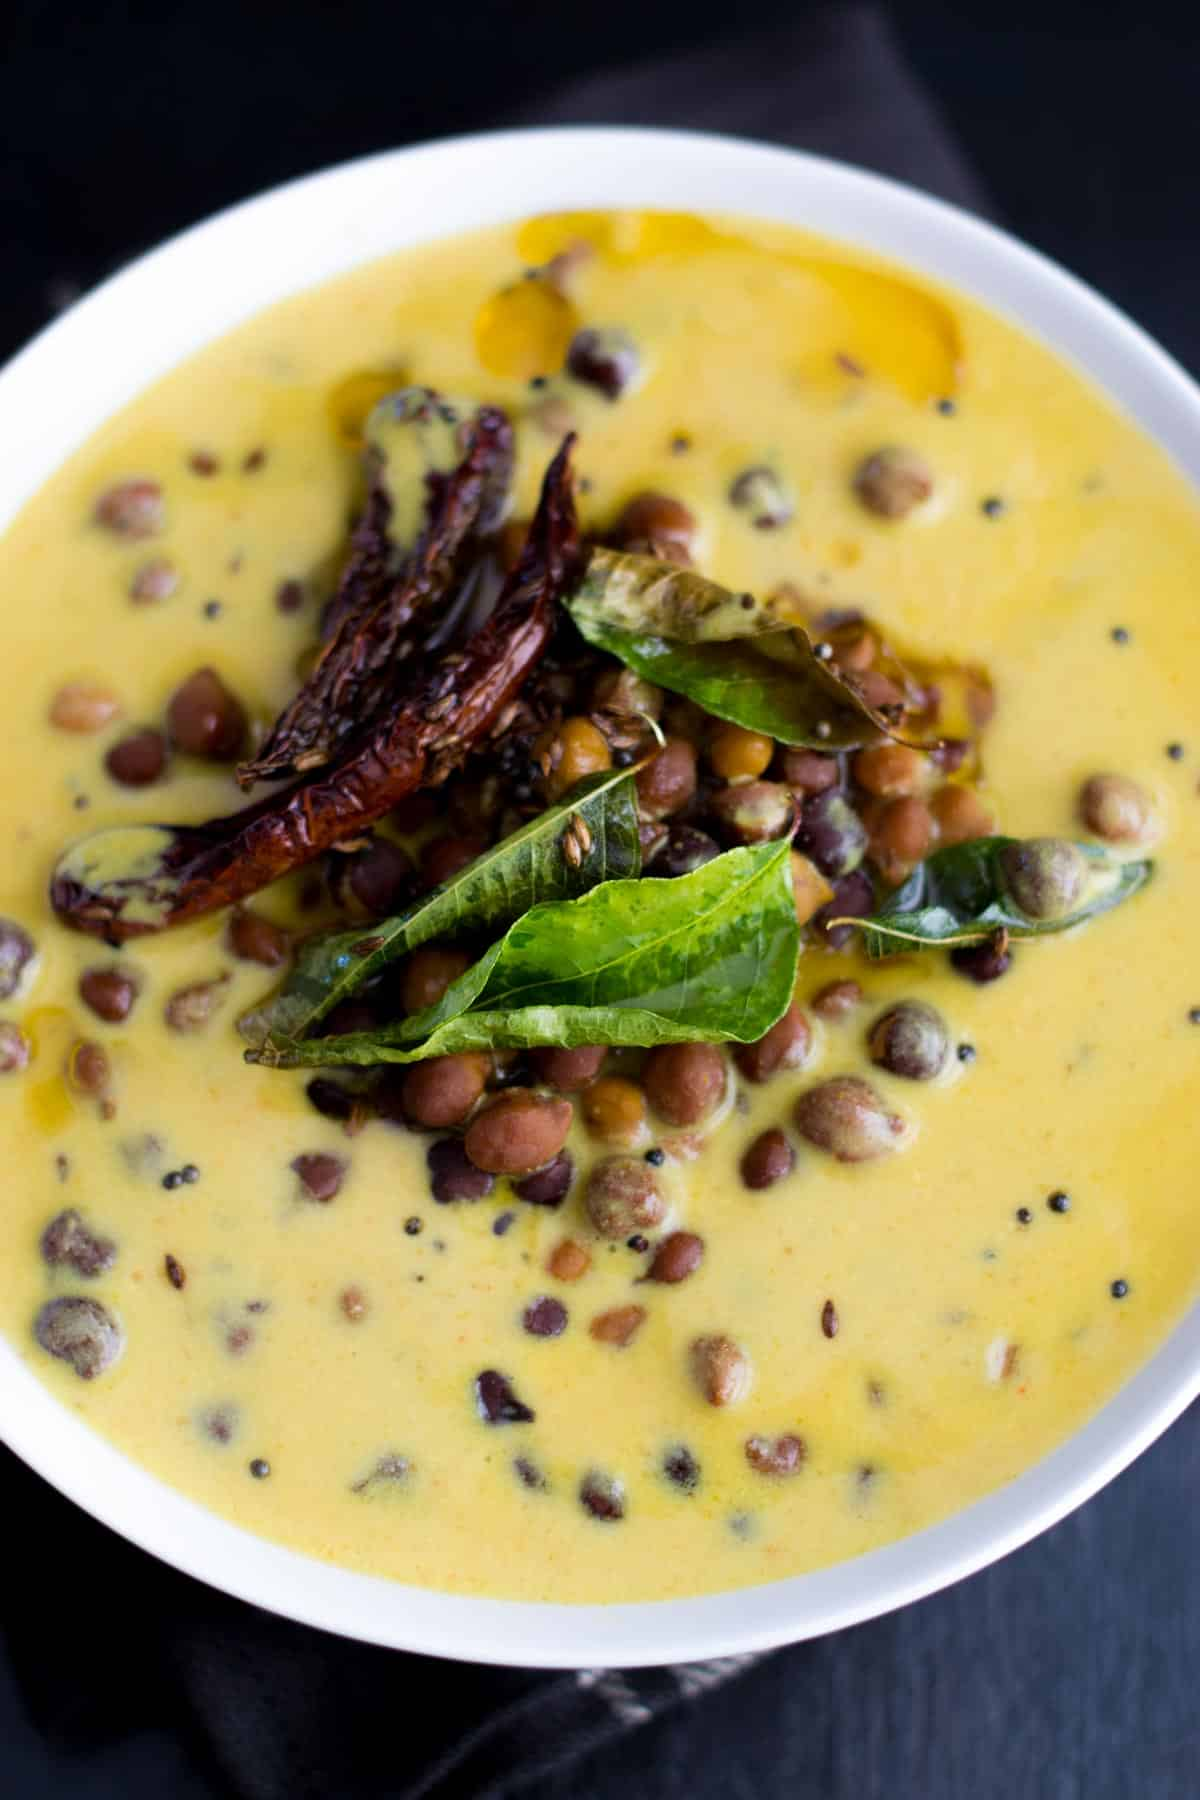 Black chickpeas in a yogurt gravy (Kaale Channe Ki Kadhi) is a Rajasthani dish that is cooked in a spicy yogurt and chickpea (besan) flour gravy. Famously called Jaisalmer Ke Channe, this dish can be made in less than 30 minutes!